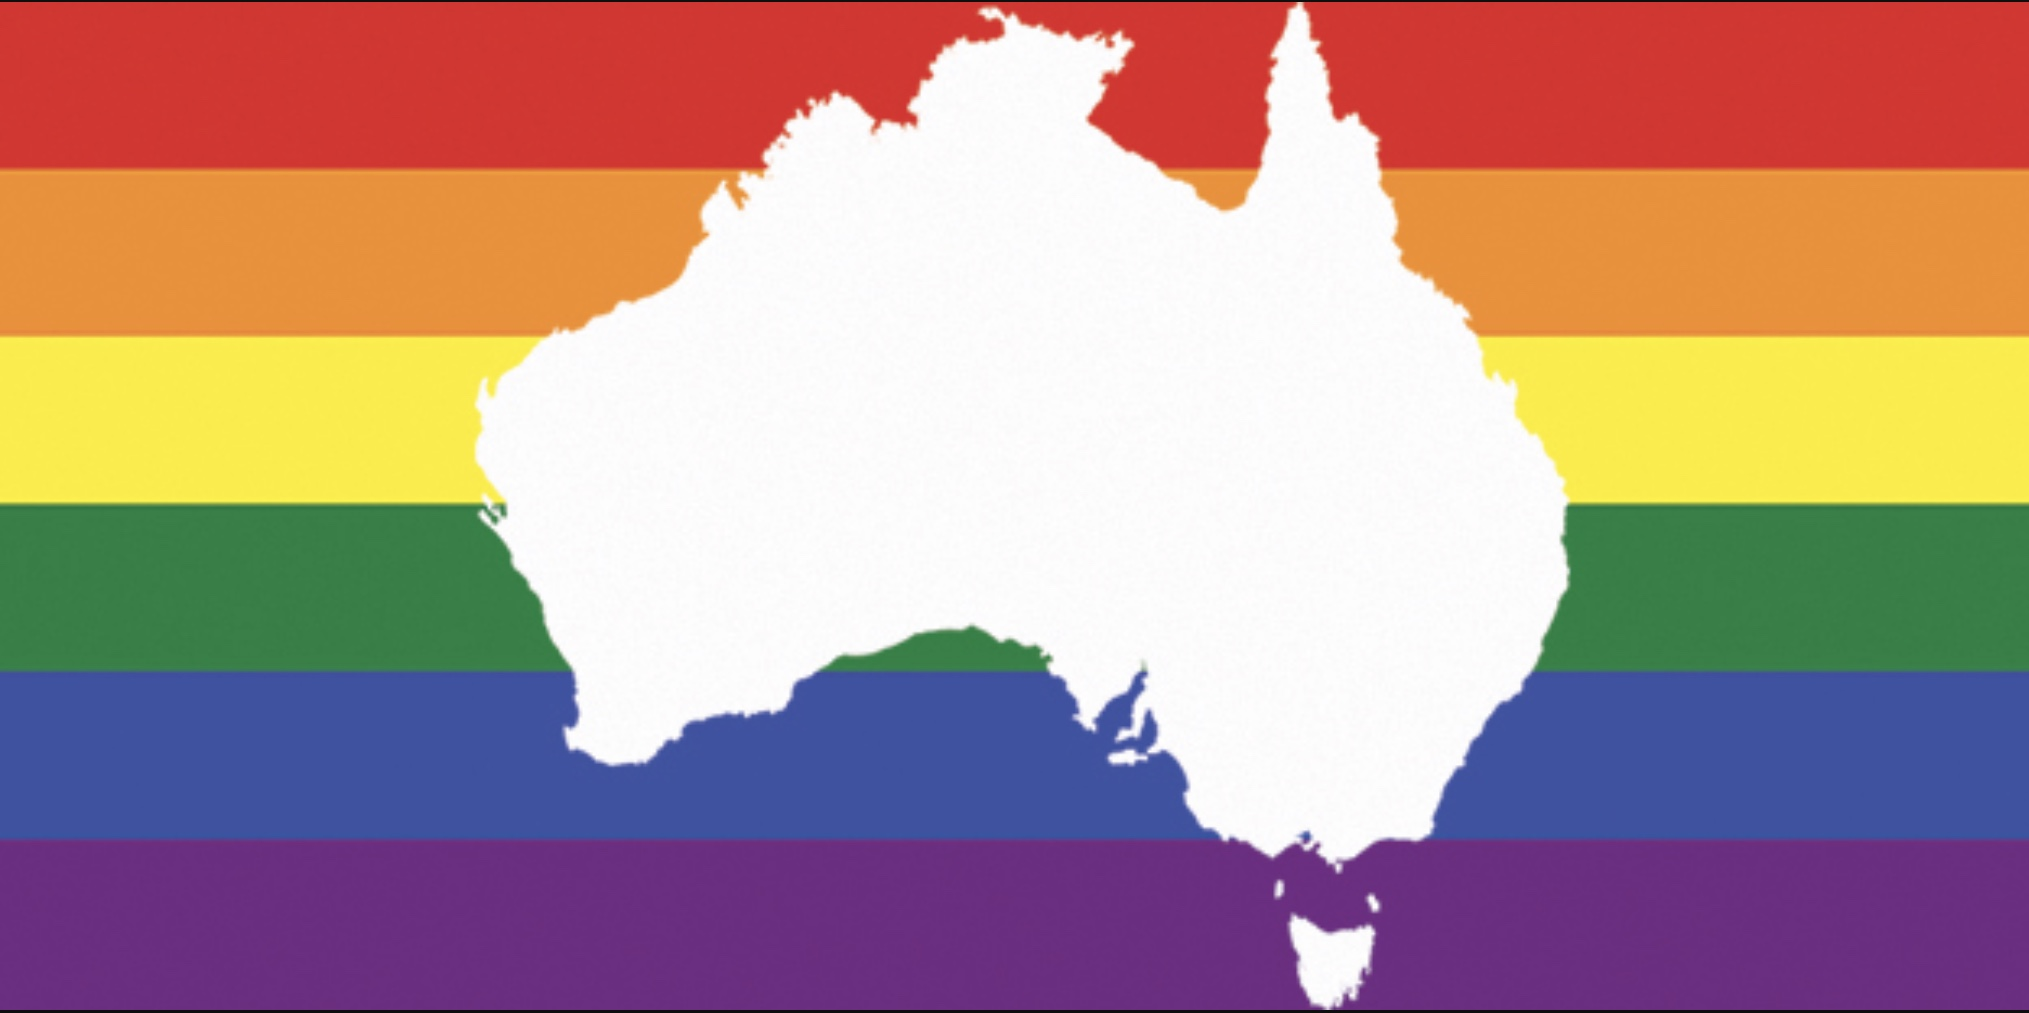 Image source: australianpridenetwork.com.au